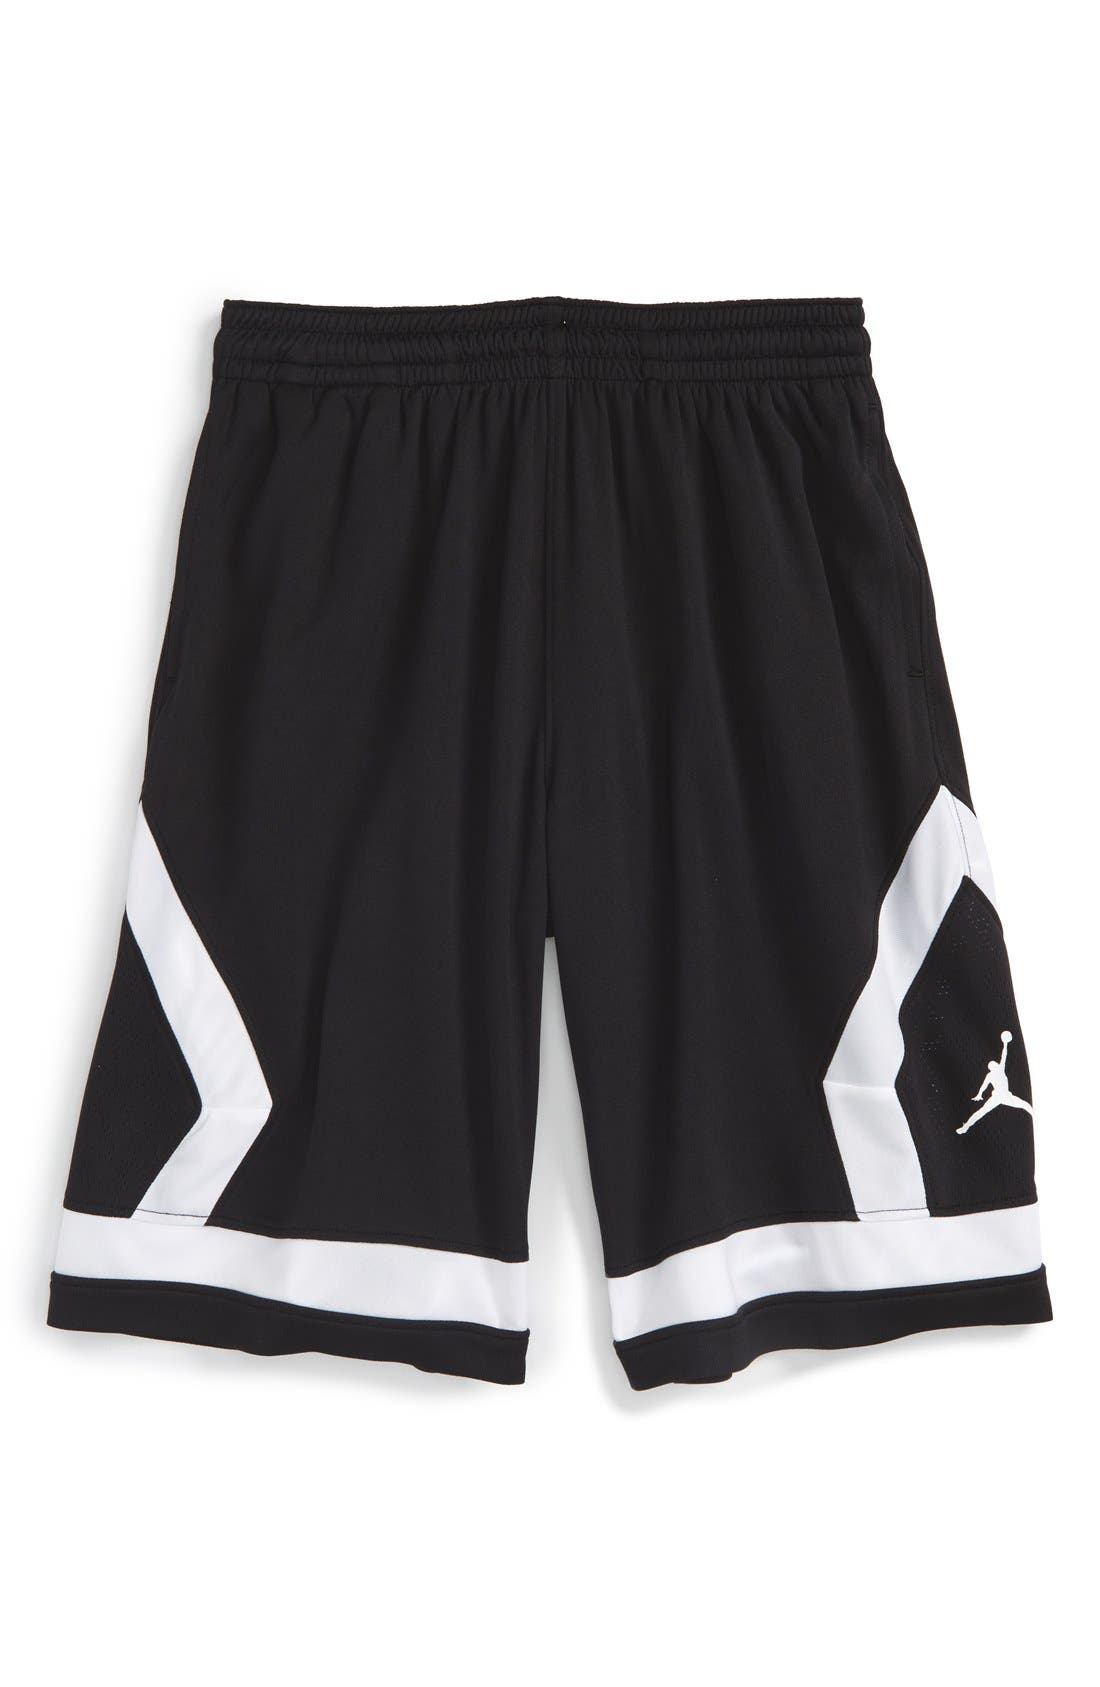 JORDAN 'Flight Diamond' Knit Basketball Shorts